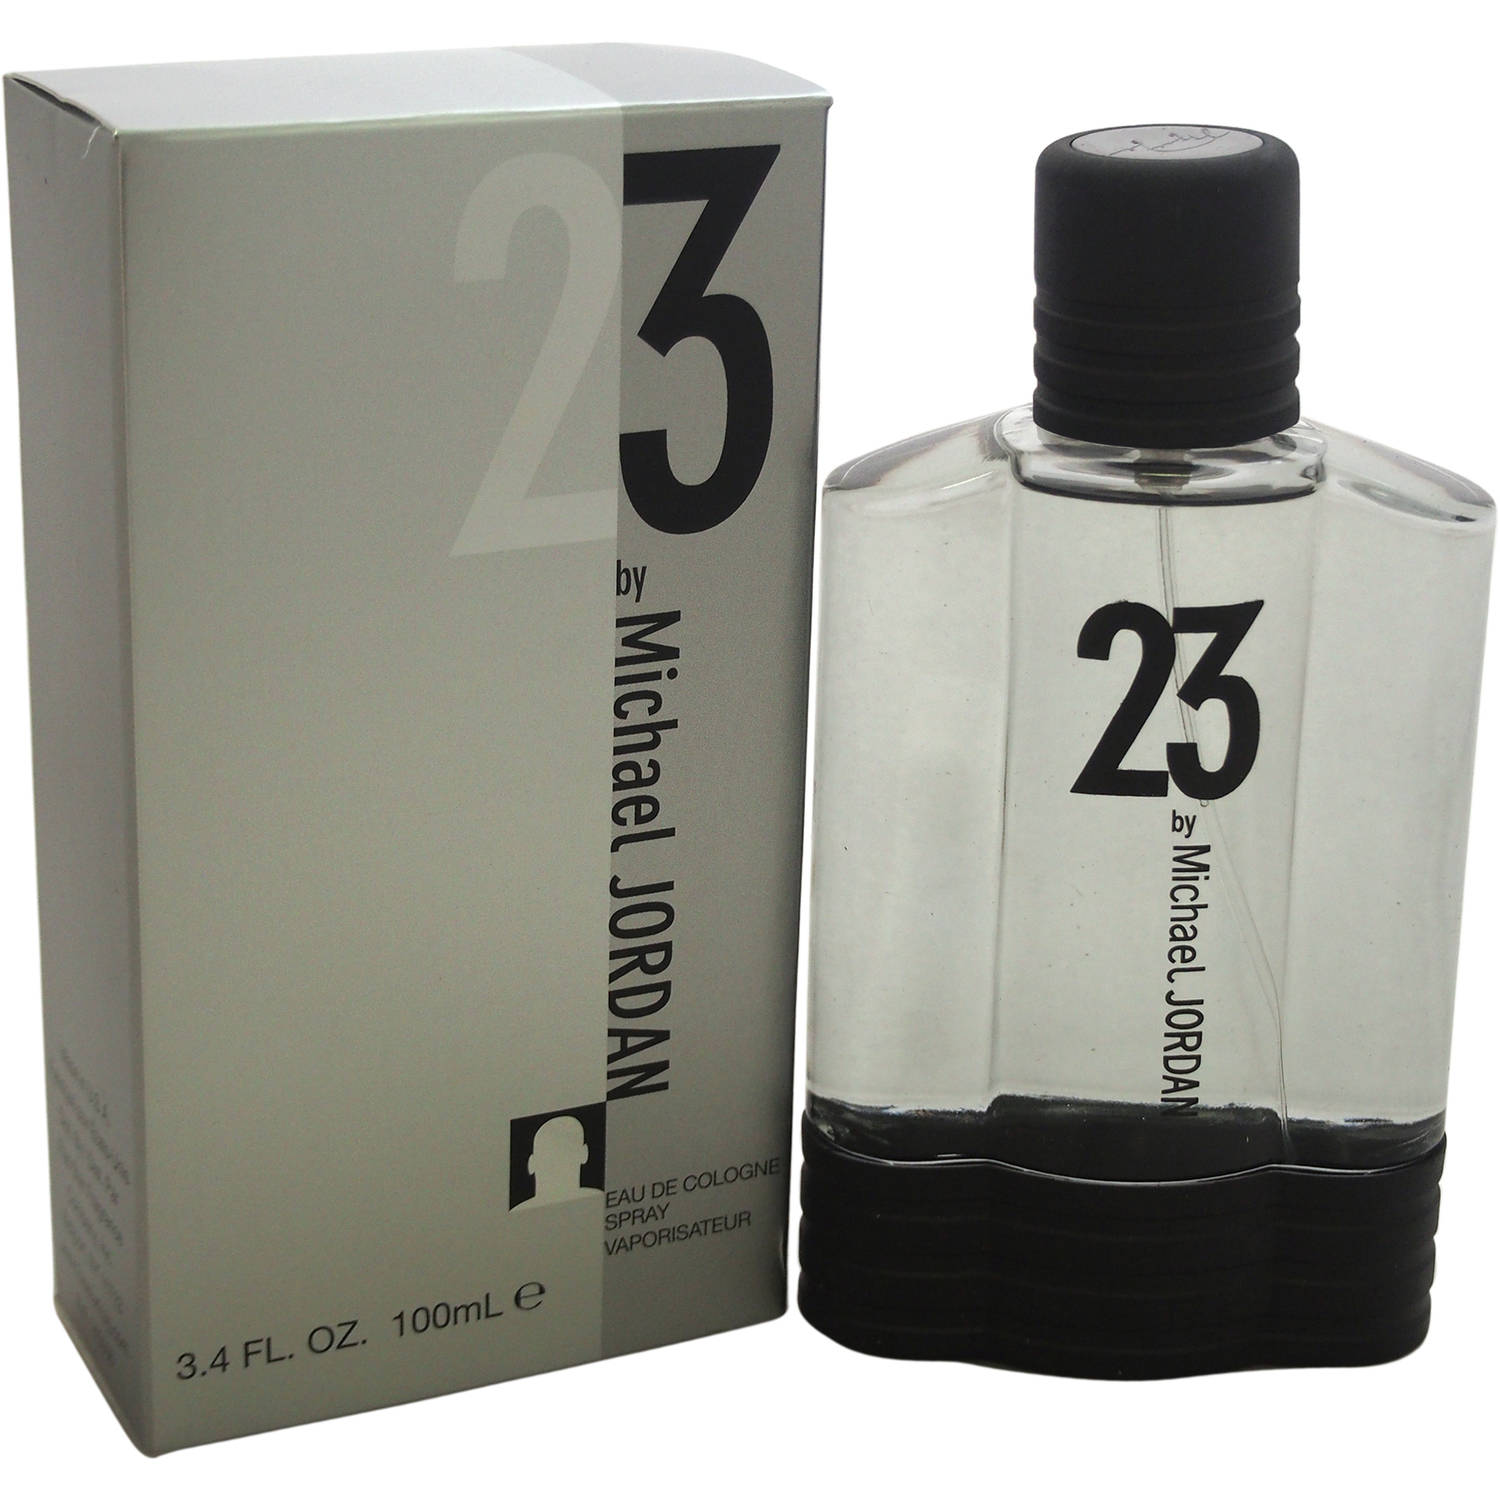 Michael Jordan 23 Men's Cologne Spray, 3.4 fl oz